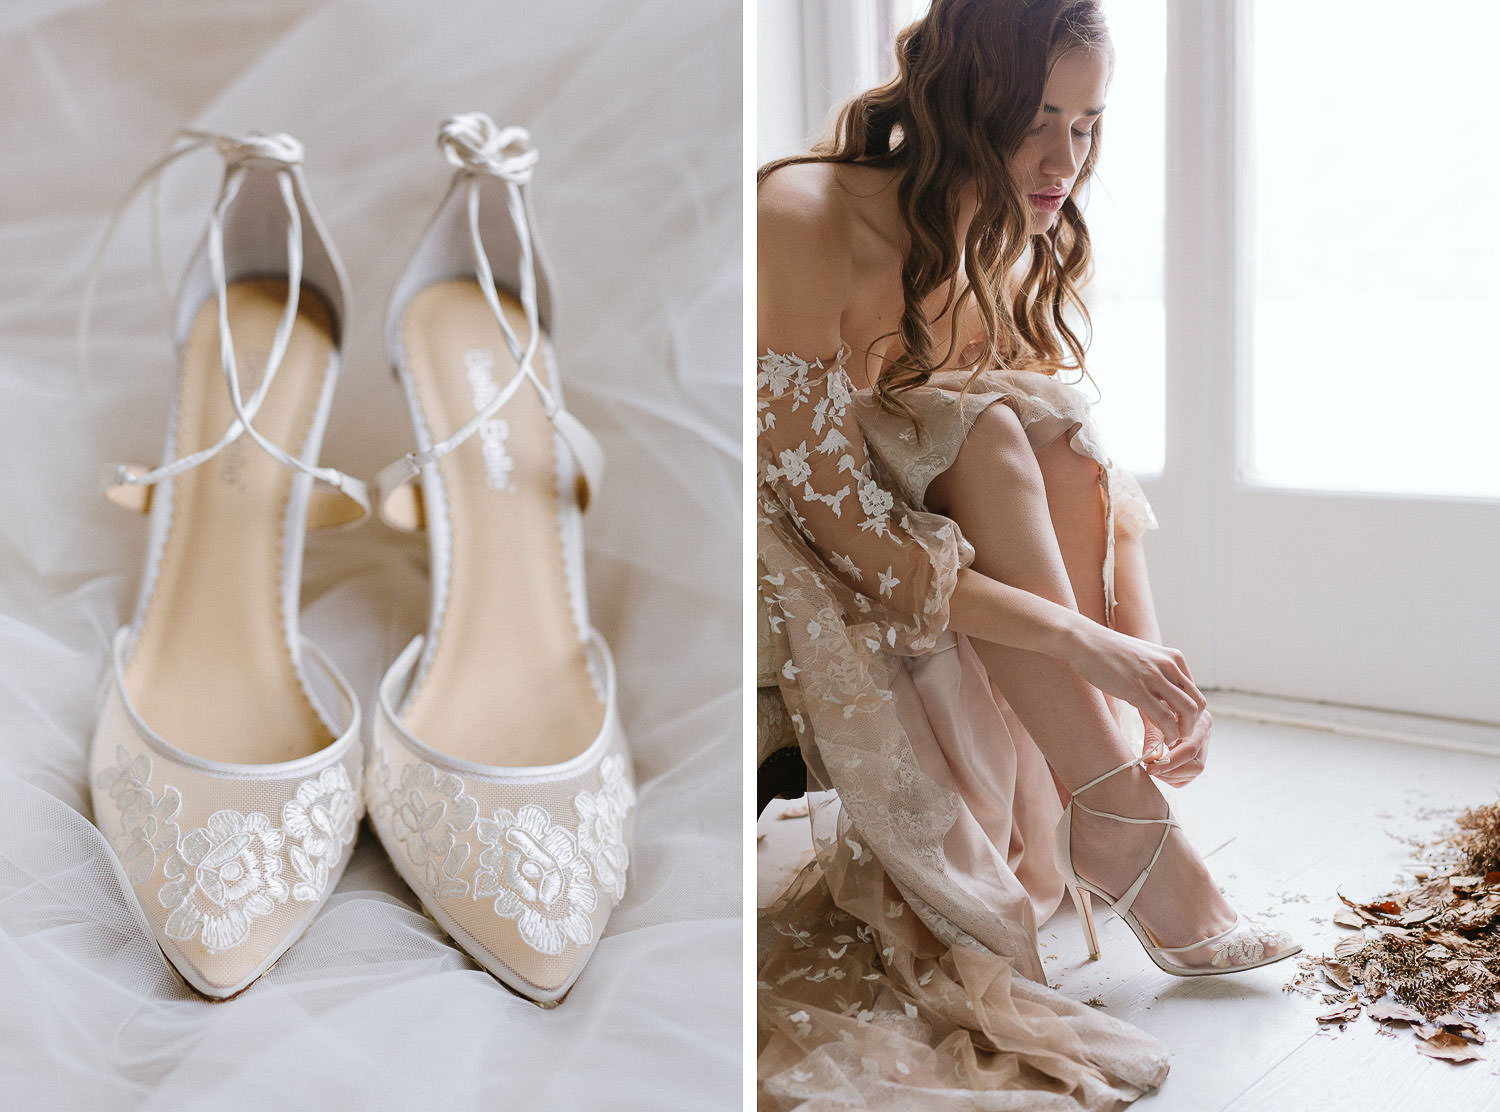 Bella Belle shoes details on Lake Como elegant wedding | Photo: Camilla Anchisi - Italian destination wedding photographer